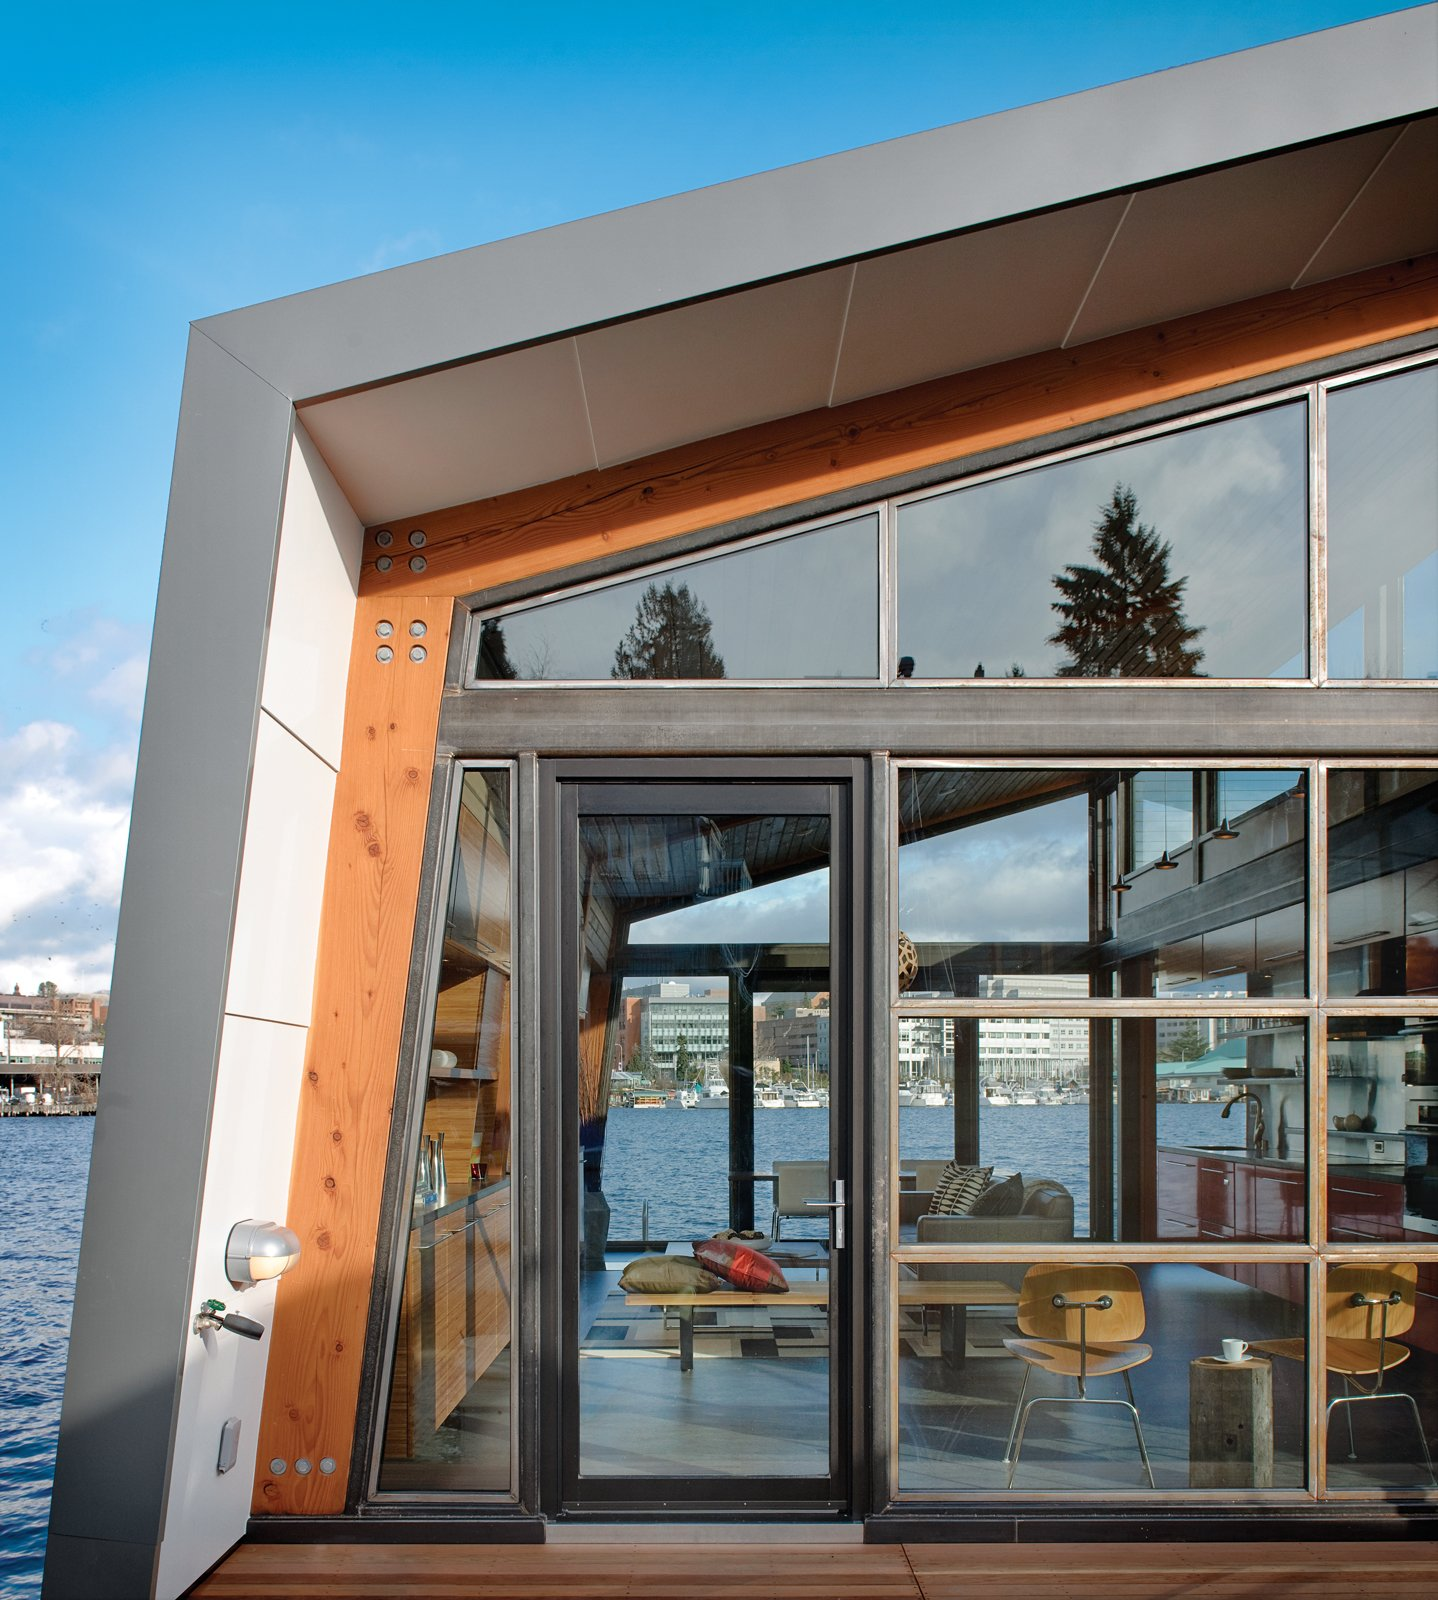 """I love being close to the water. There's constant change, with boats and wildlife passing by,"" says Denise Draper about her floating home on Seattle's Portage Bay. Read the story on the renovation 10 years in the making here.  Photo 2 of 2 in A Renovated Boathouse on Seattle's Portage Bay"